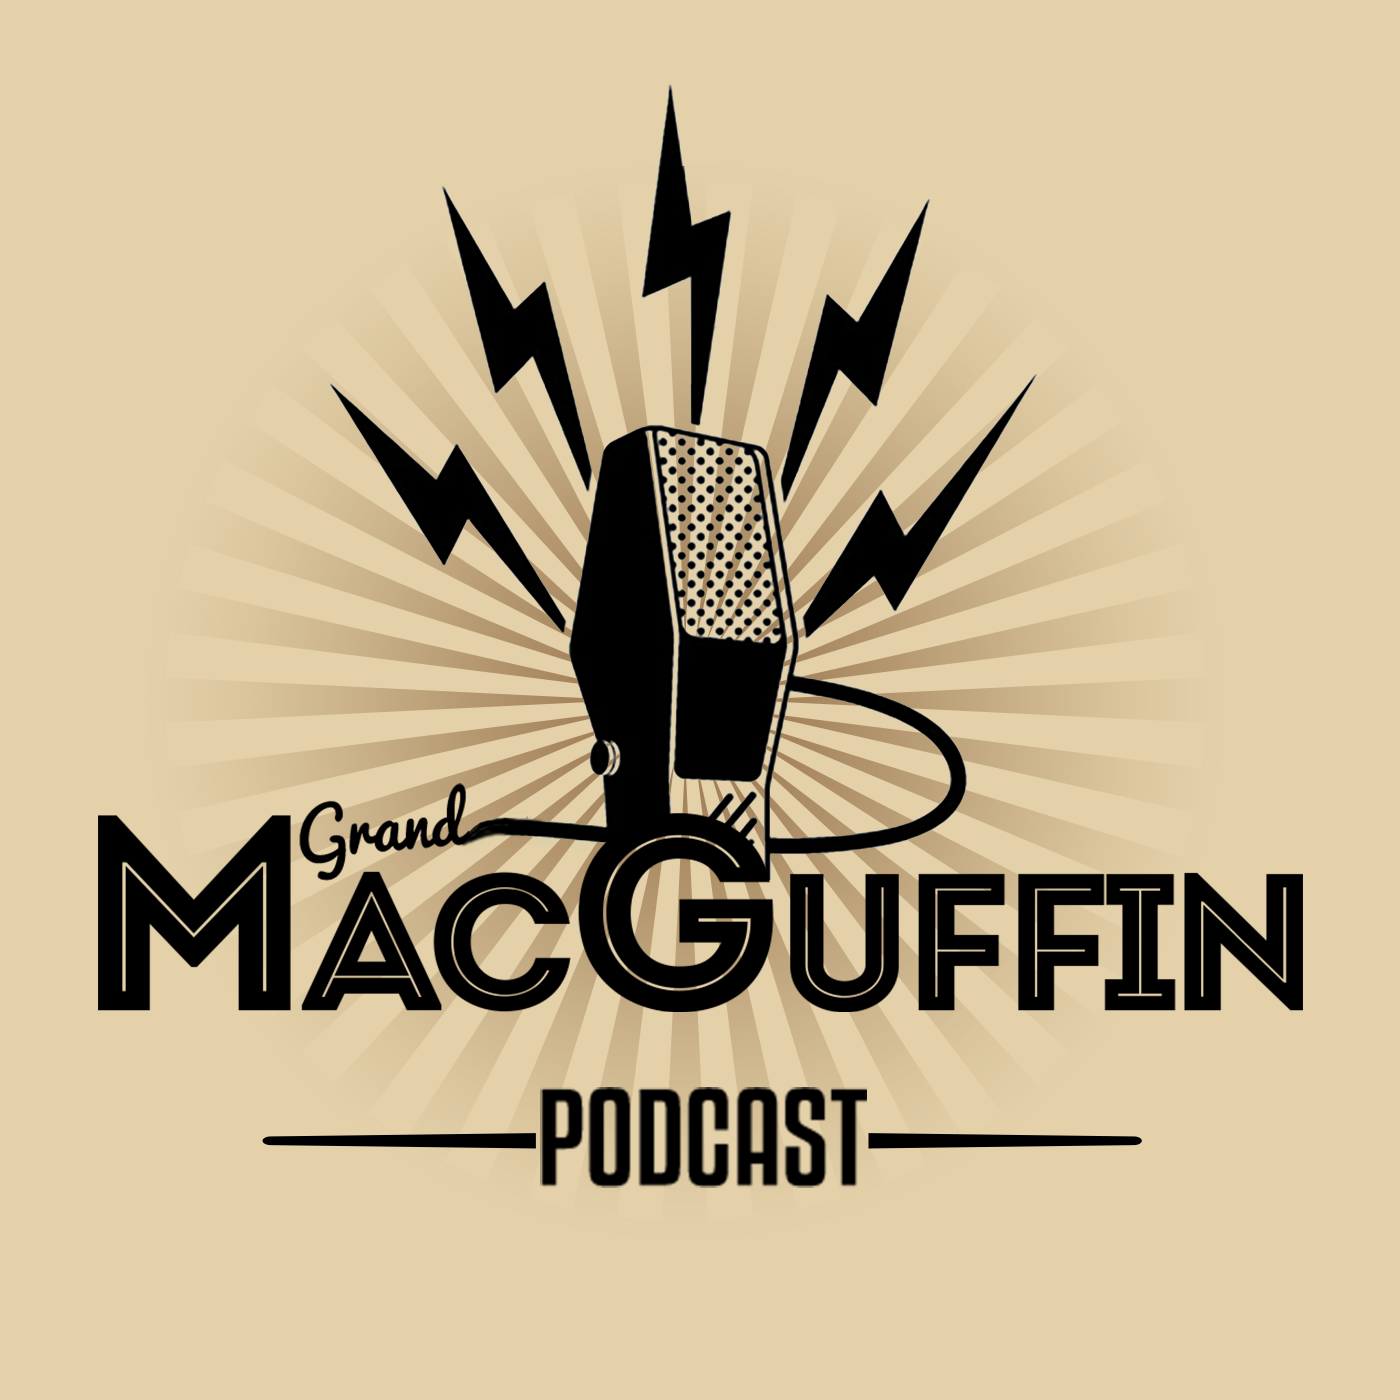 Grand MacGuffin Podcast